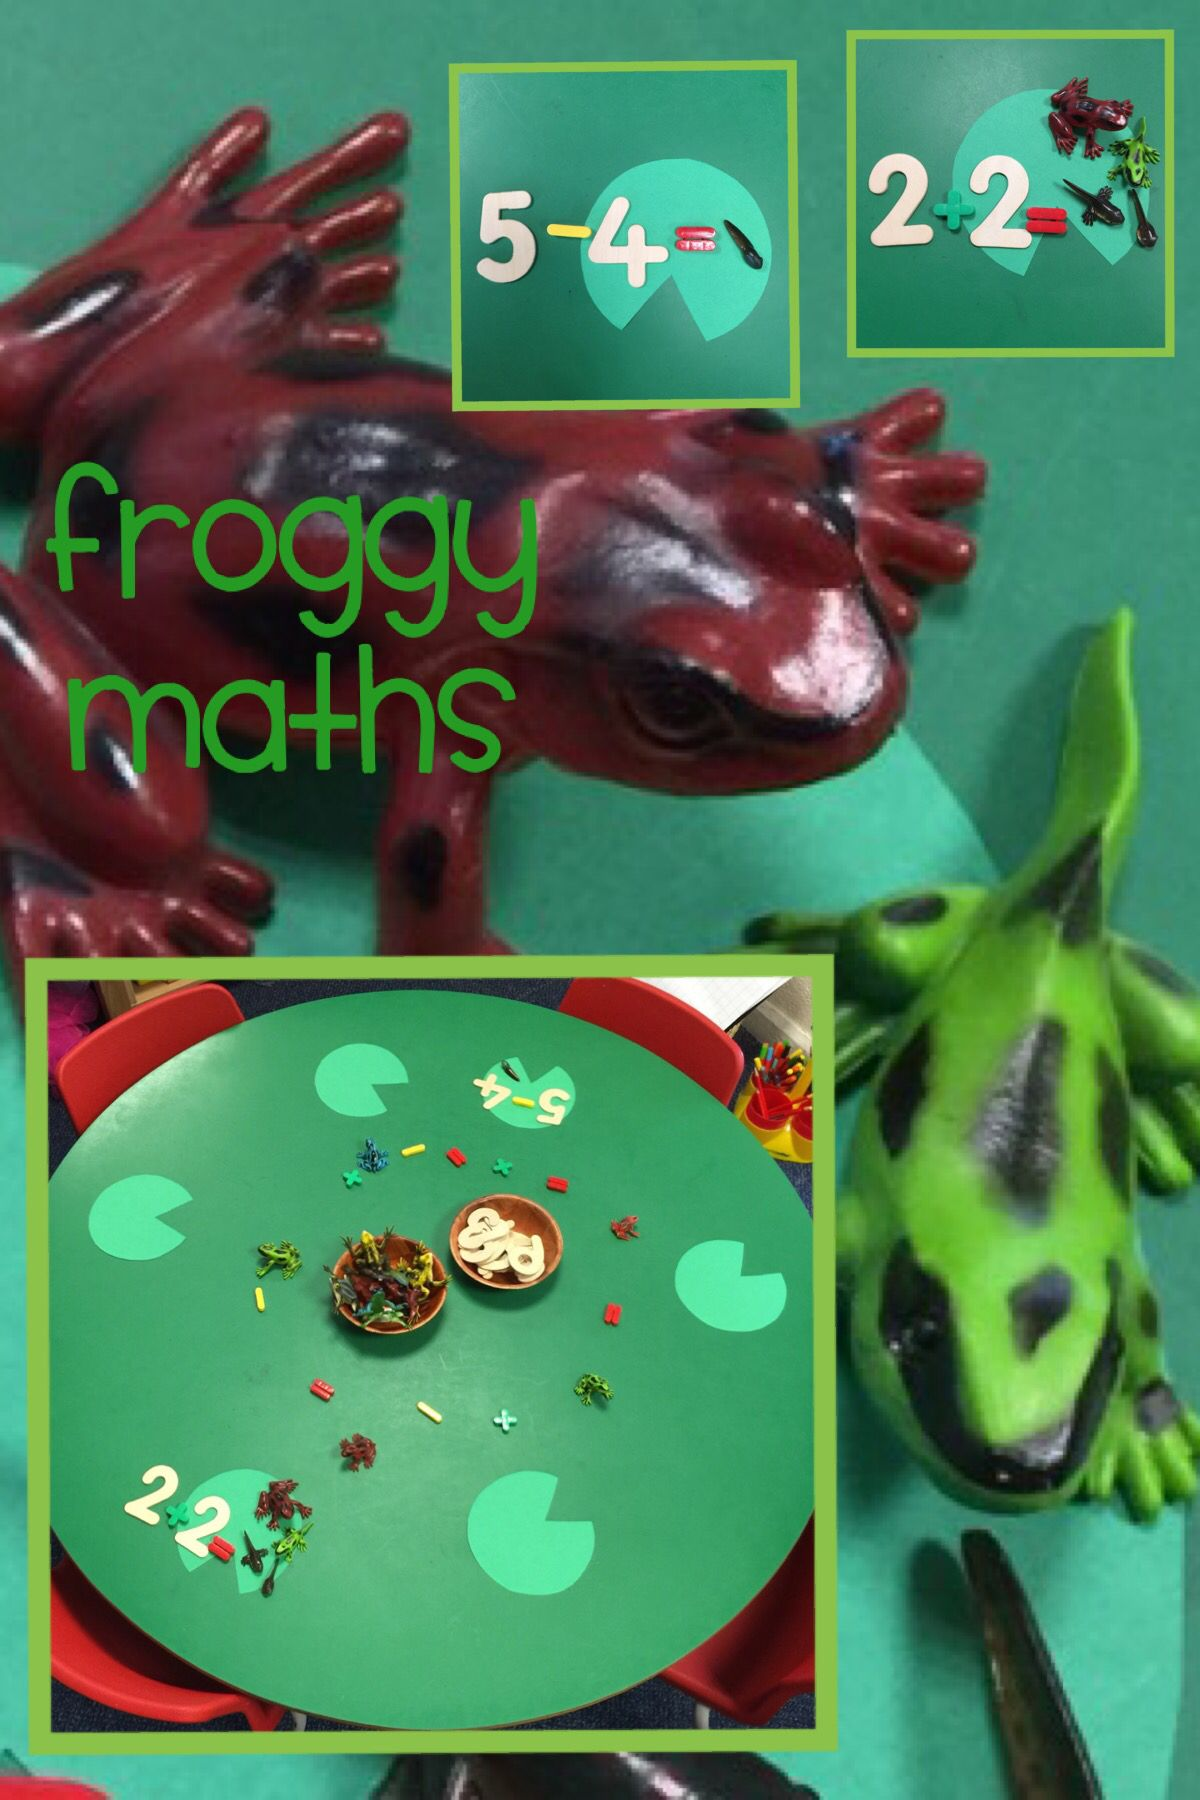 Froggy Maths Adult Led Activity Using Frogs For Adding